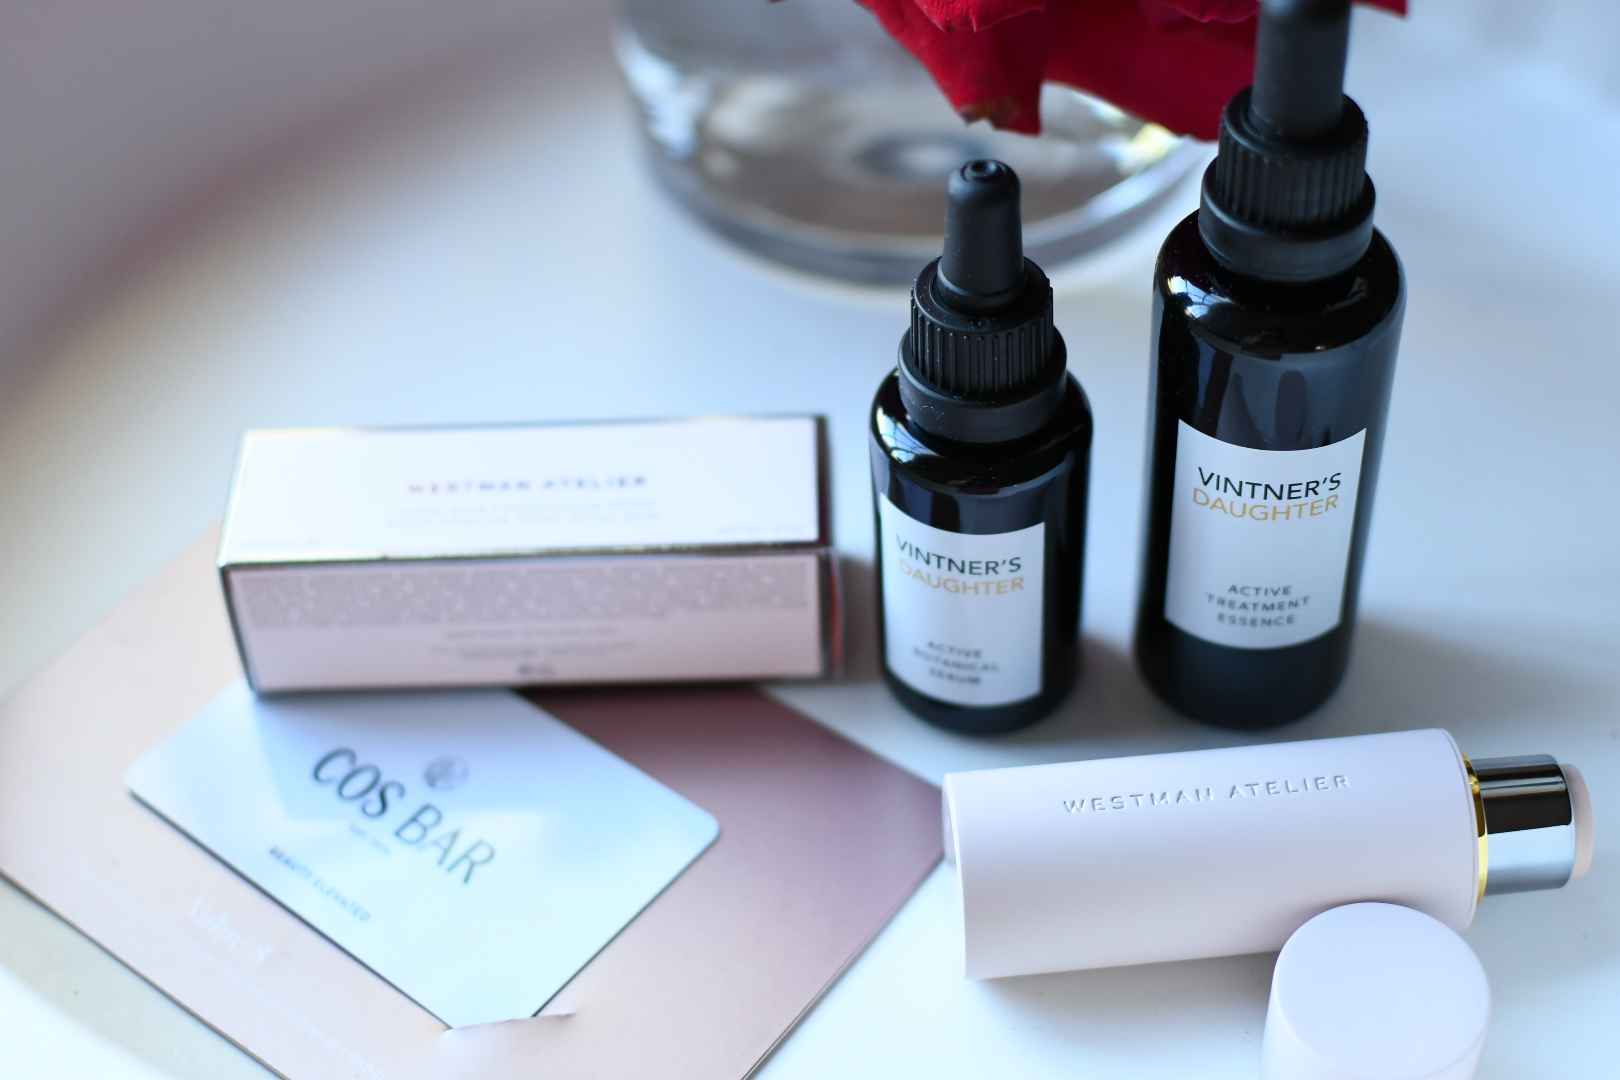 Cos Bar Sale by popular Monterey beauty blog, Haute Beauty Guide: image of a Cos Bar gift card and Vintner's Daughter active treatment.